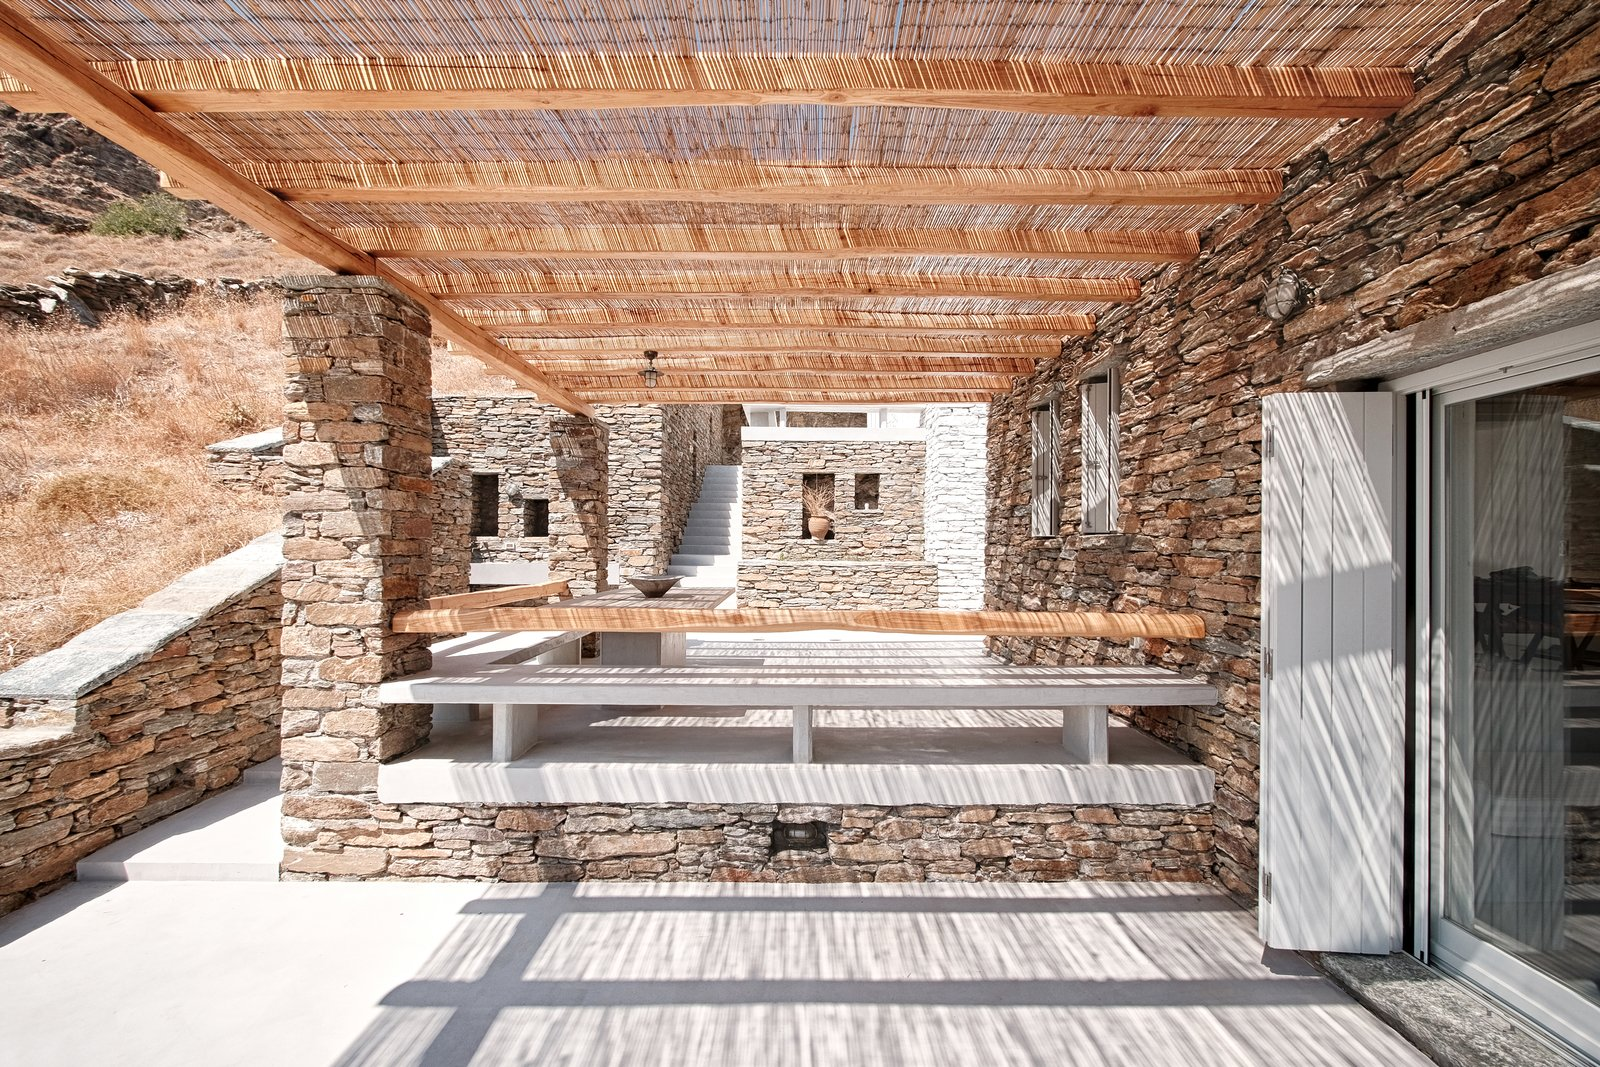 Eating area terraces  ROCKSPLIT house by COMETA ARCHITECTS